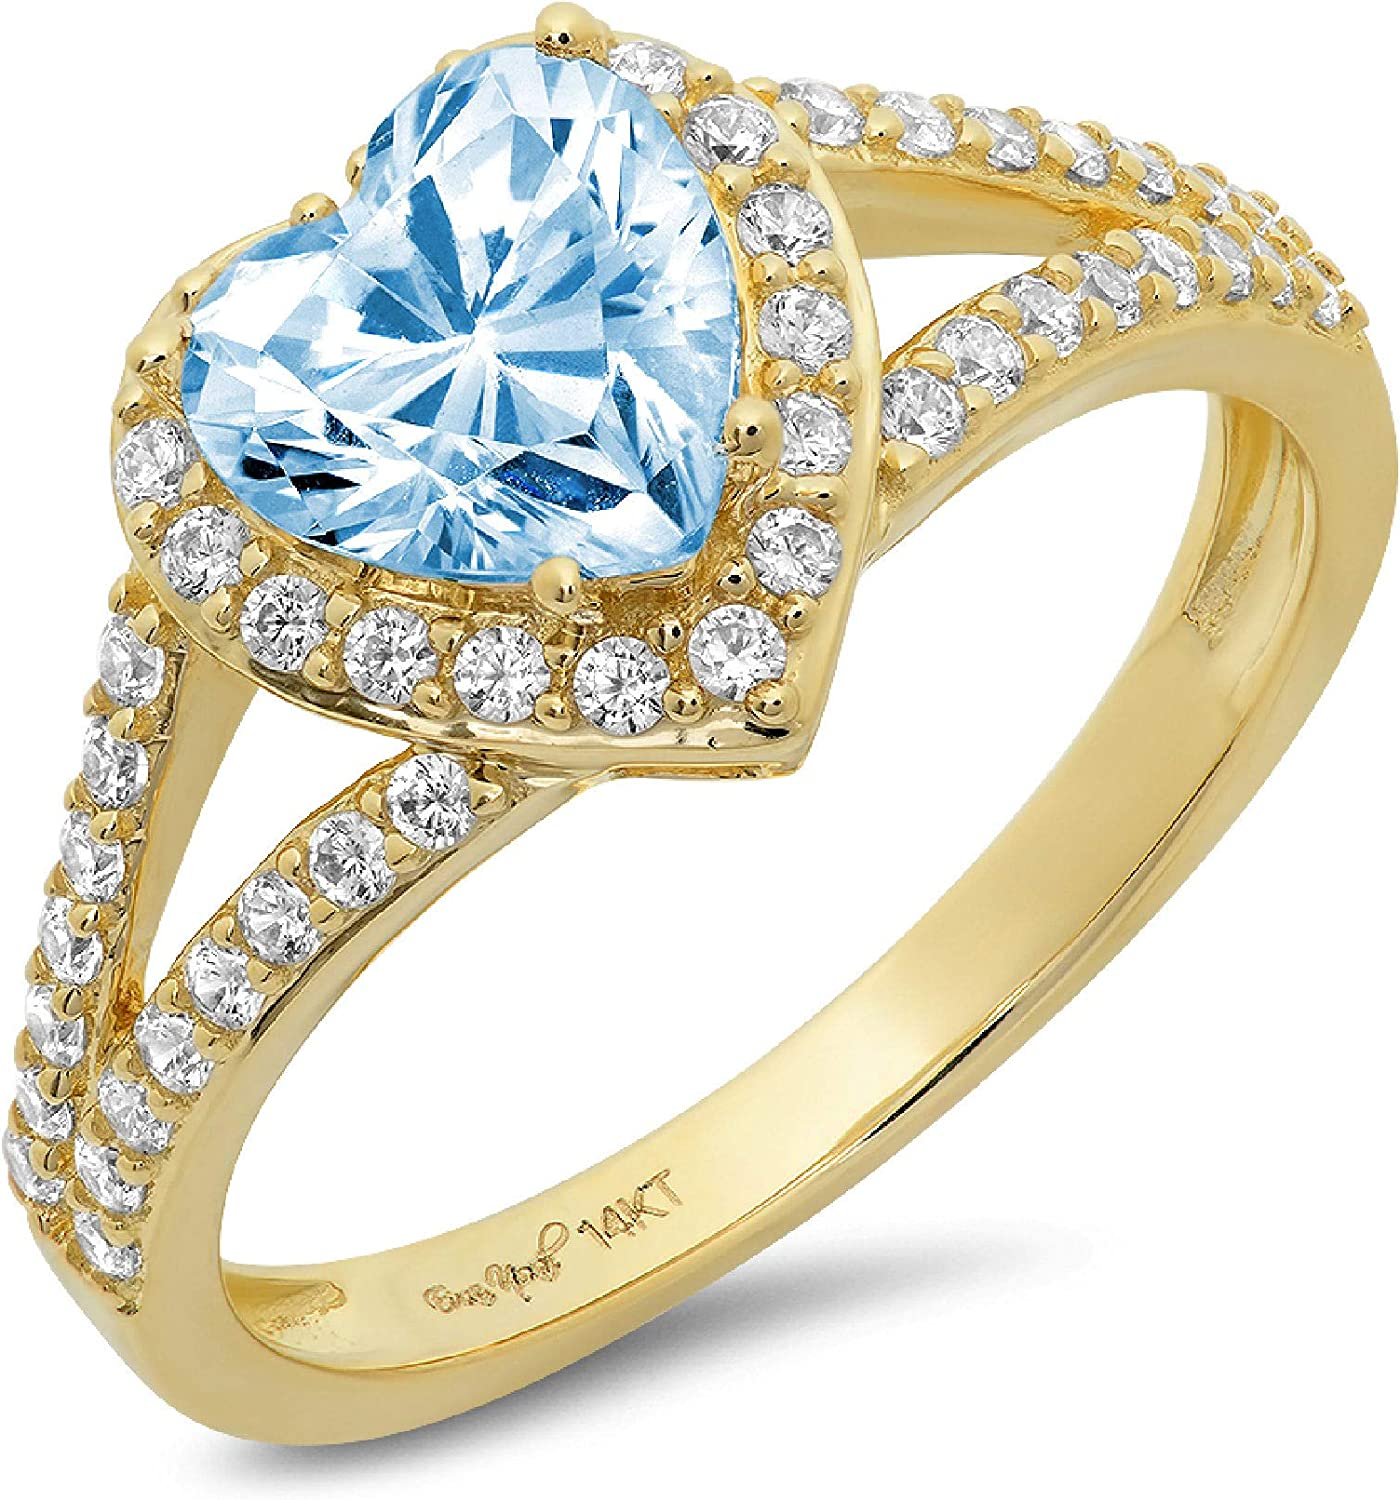 1.75 ct Heart Cut Solitaire Accent Halo split shank Genuine Flawless Natural Sky Blue Topaz Gemstone Engagement Promise Statement Anniversary Bridal Wedding Ring Solid 18K Yellow Gold